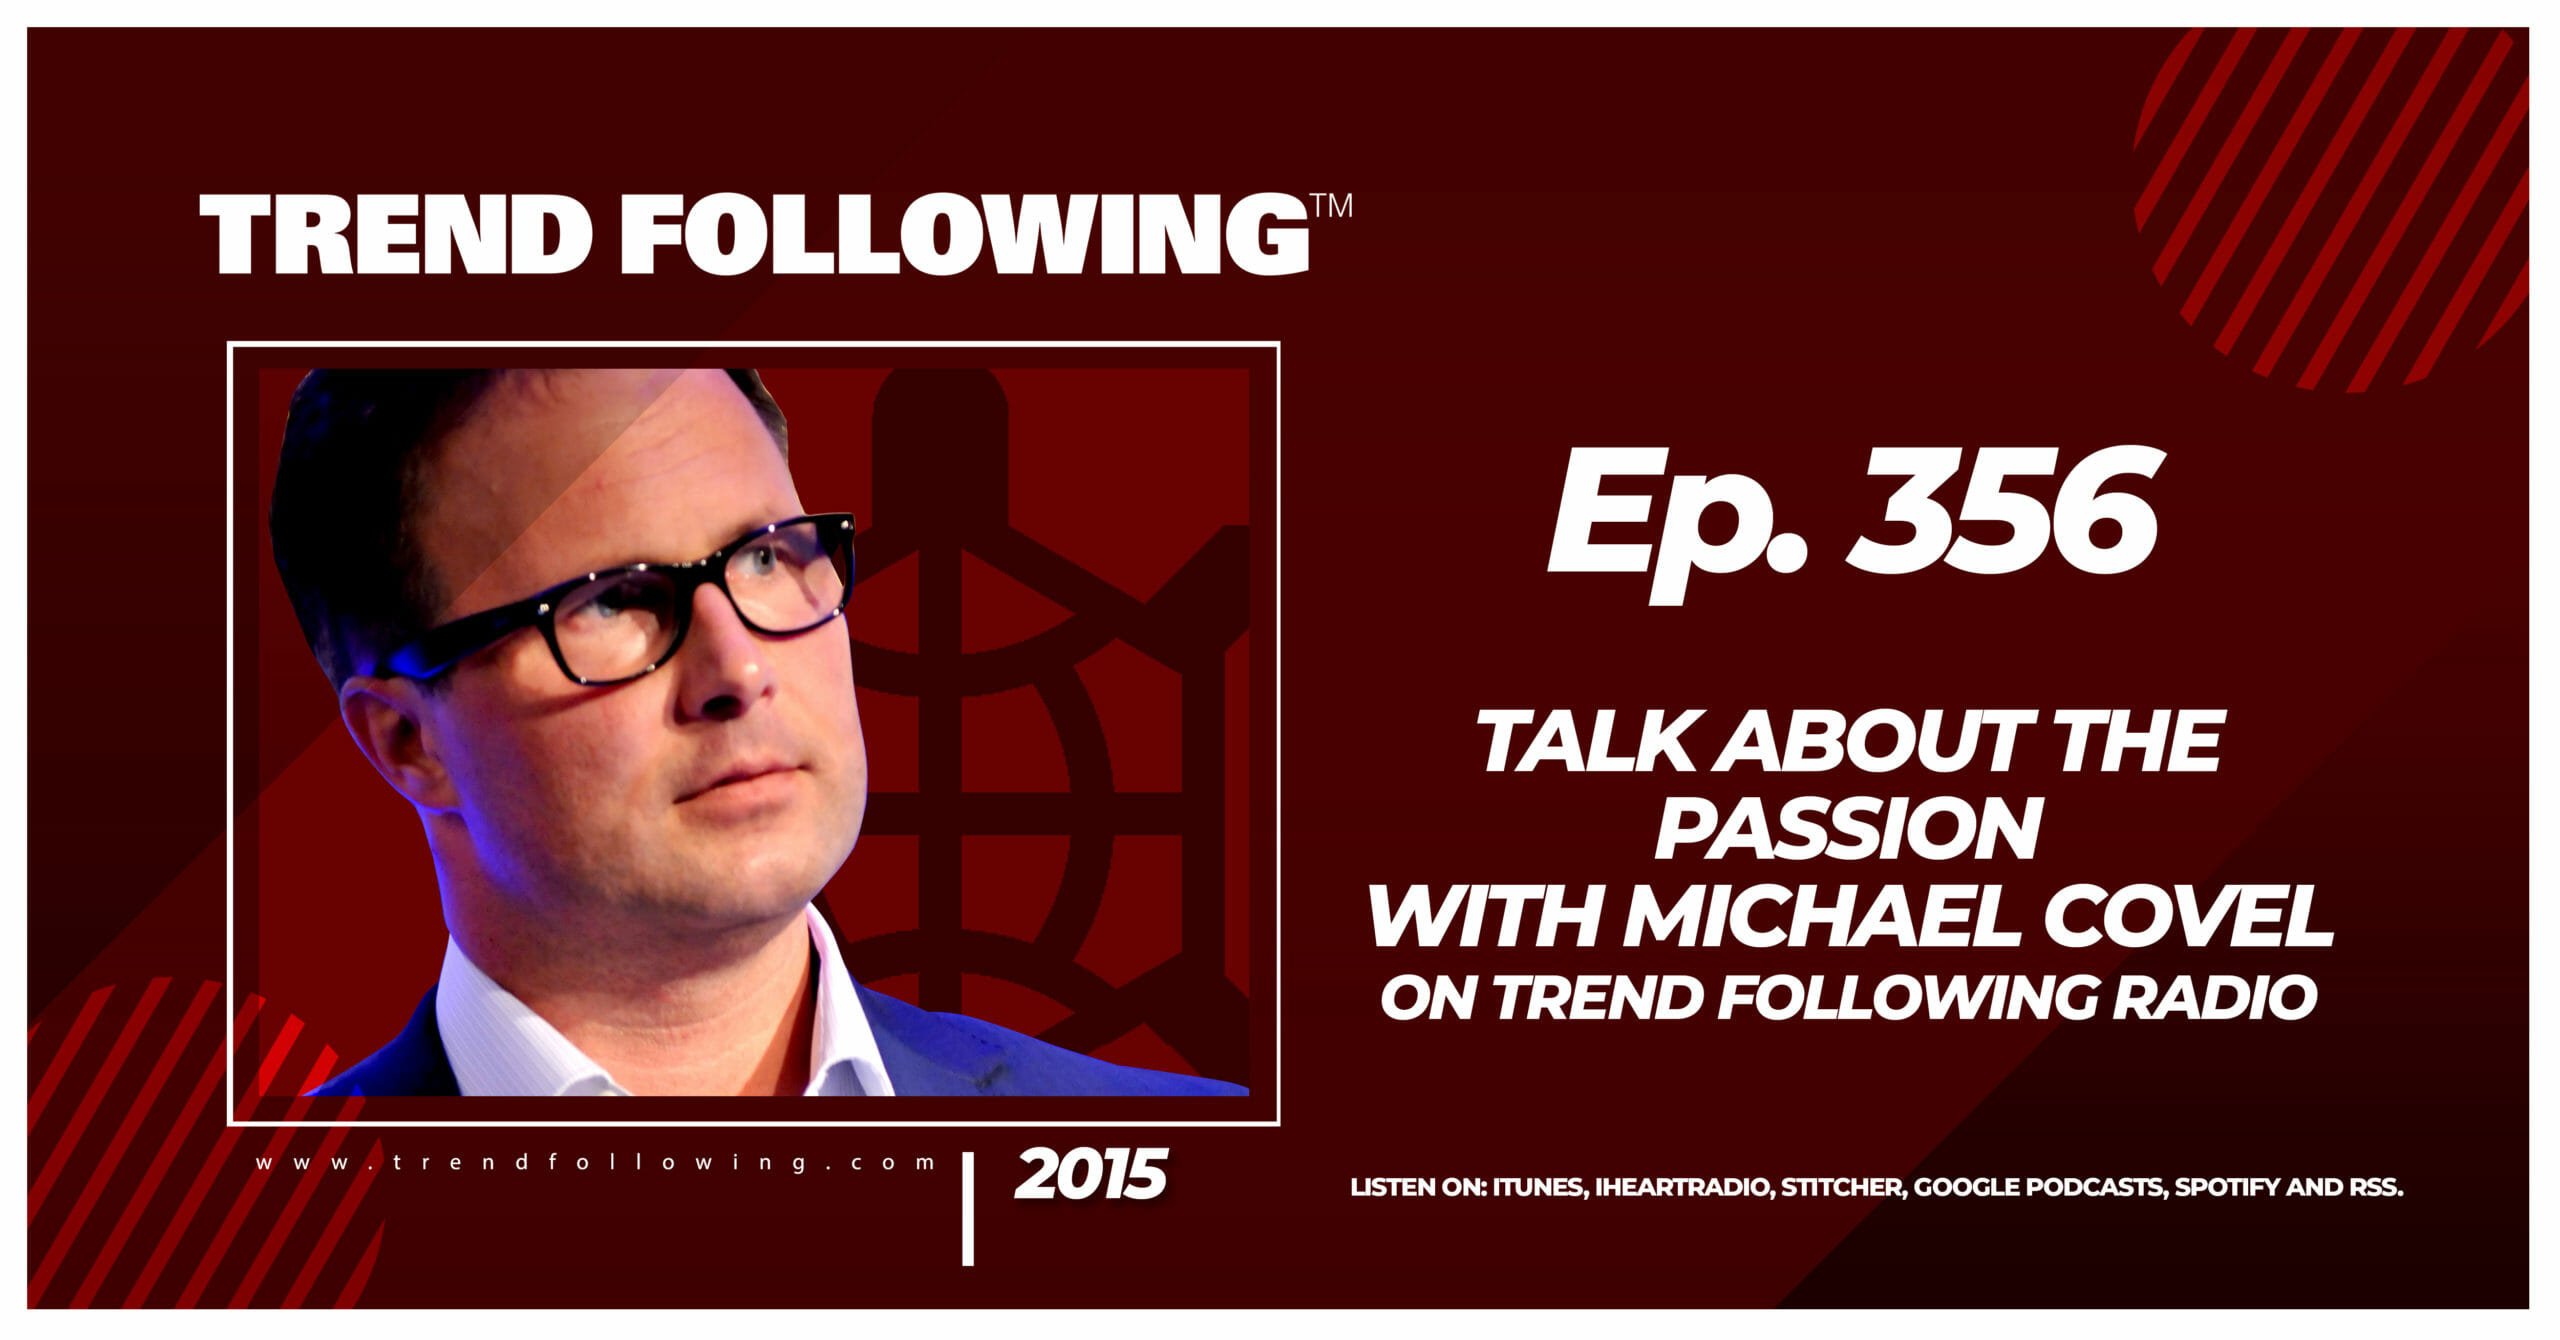 Talk About The Passion with Michael Covel on Trend Following Radio